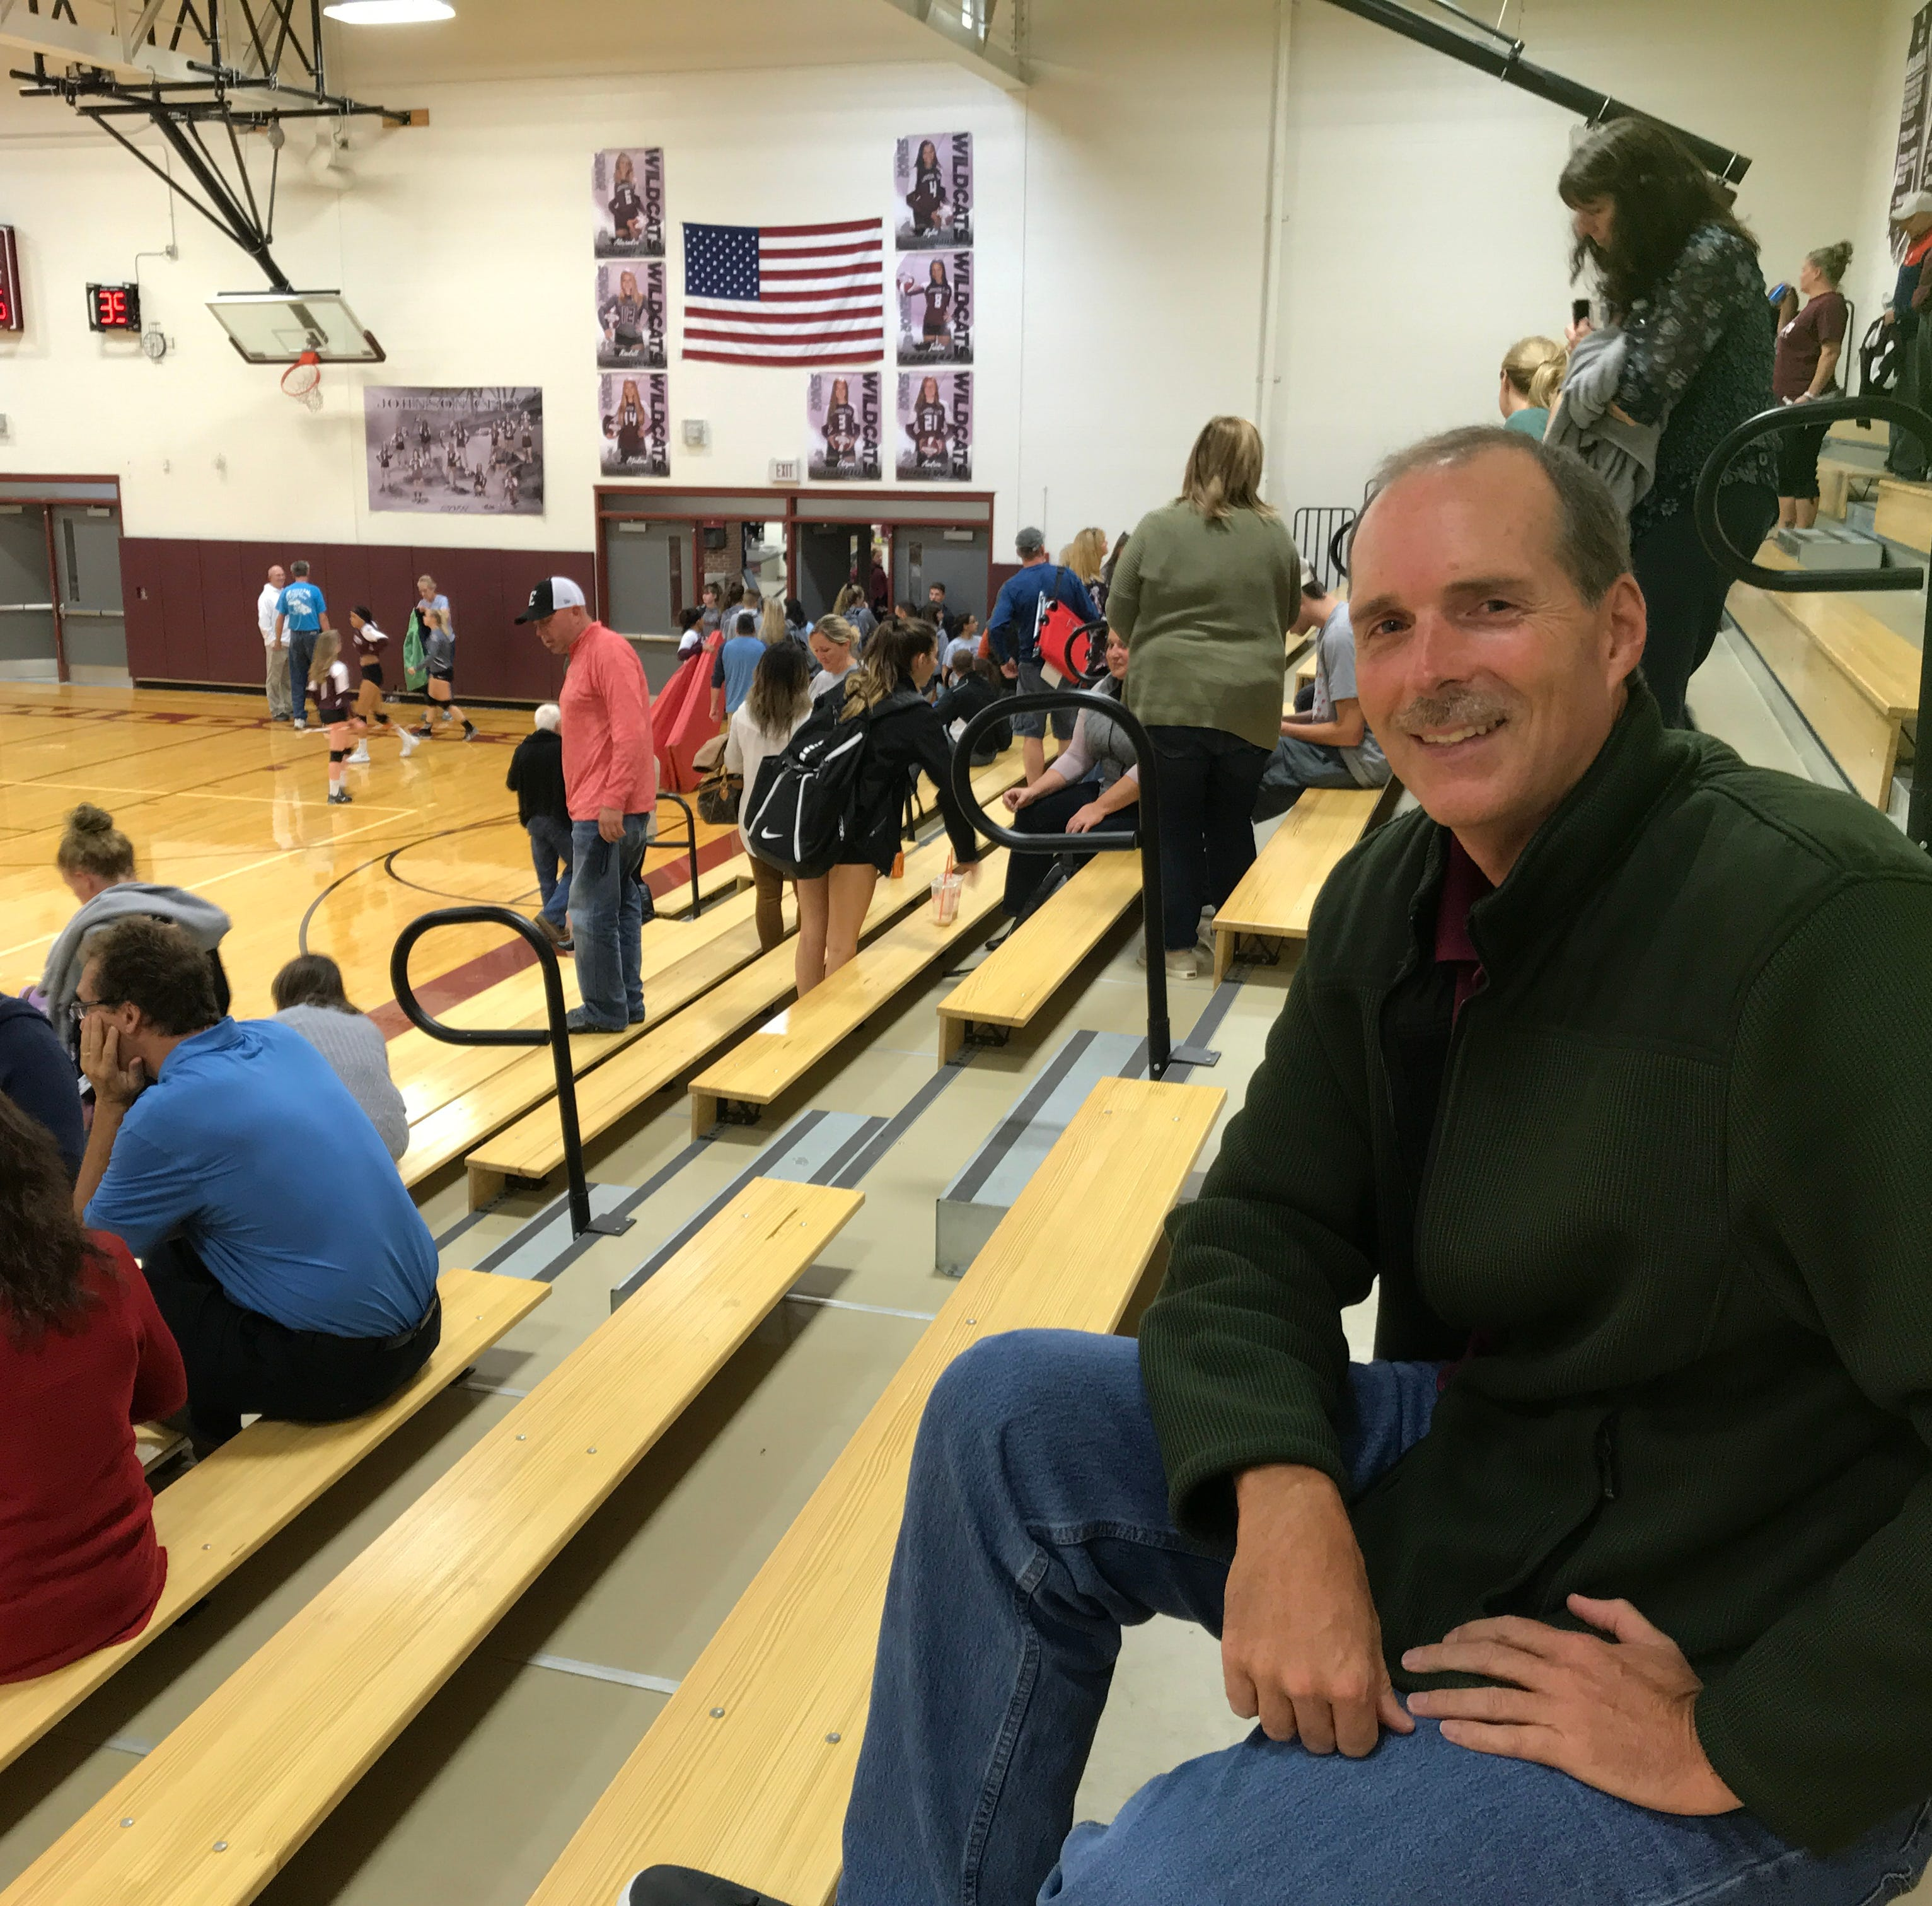 Jim Lynch, of Elmira, traveled to Johnson City to see his daughter, Kylie, and her Elmira volleyball team play on Oct. 2.